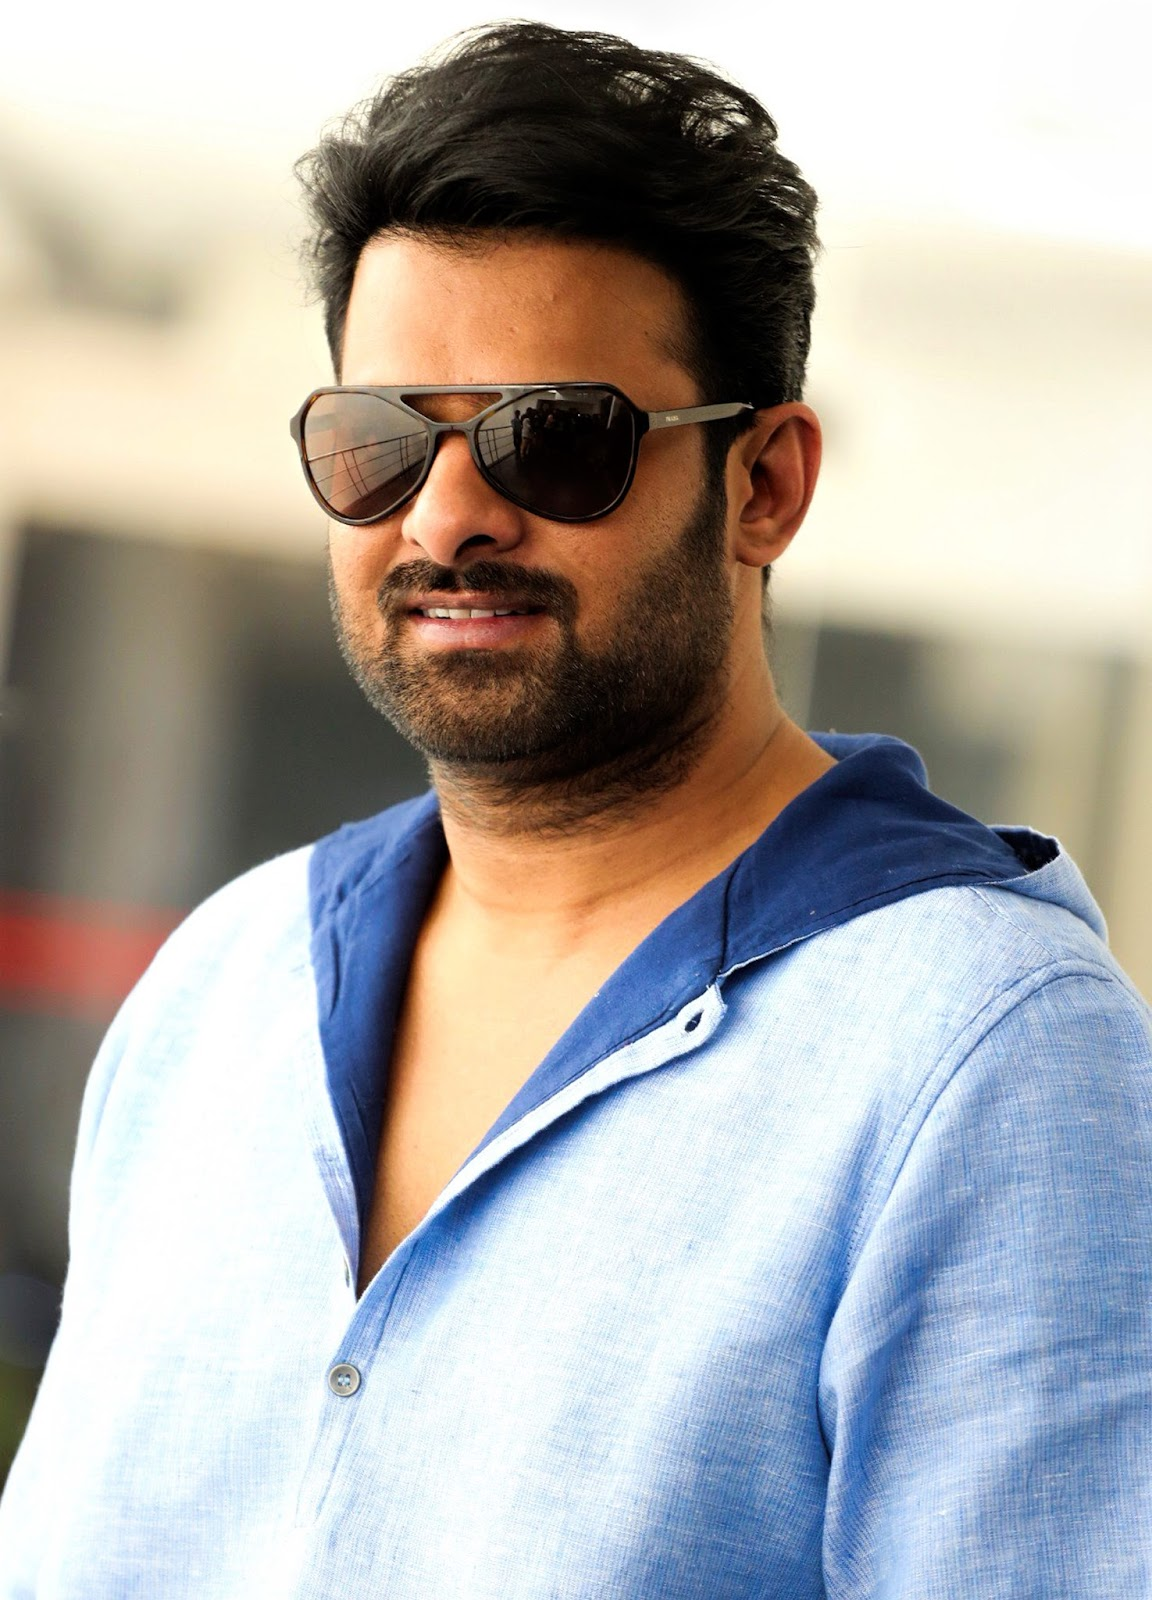 Prabhas Photos 2017 - Latest Full HD Wallpapers | HD Wallpapers (High Definition) | Free Background